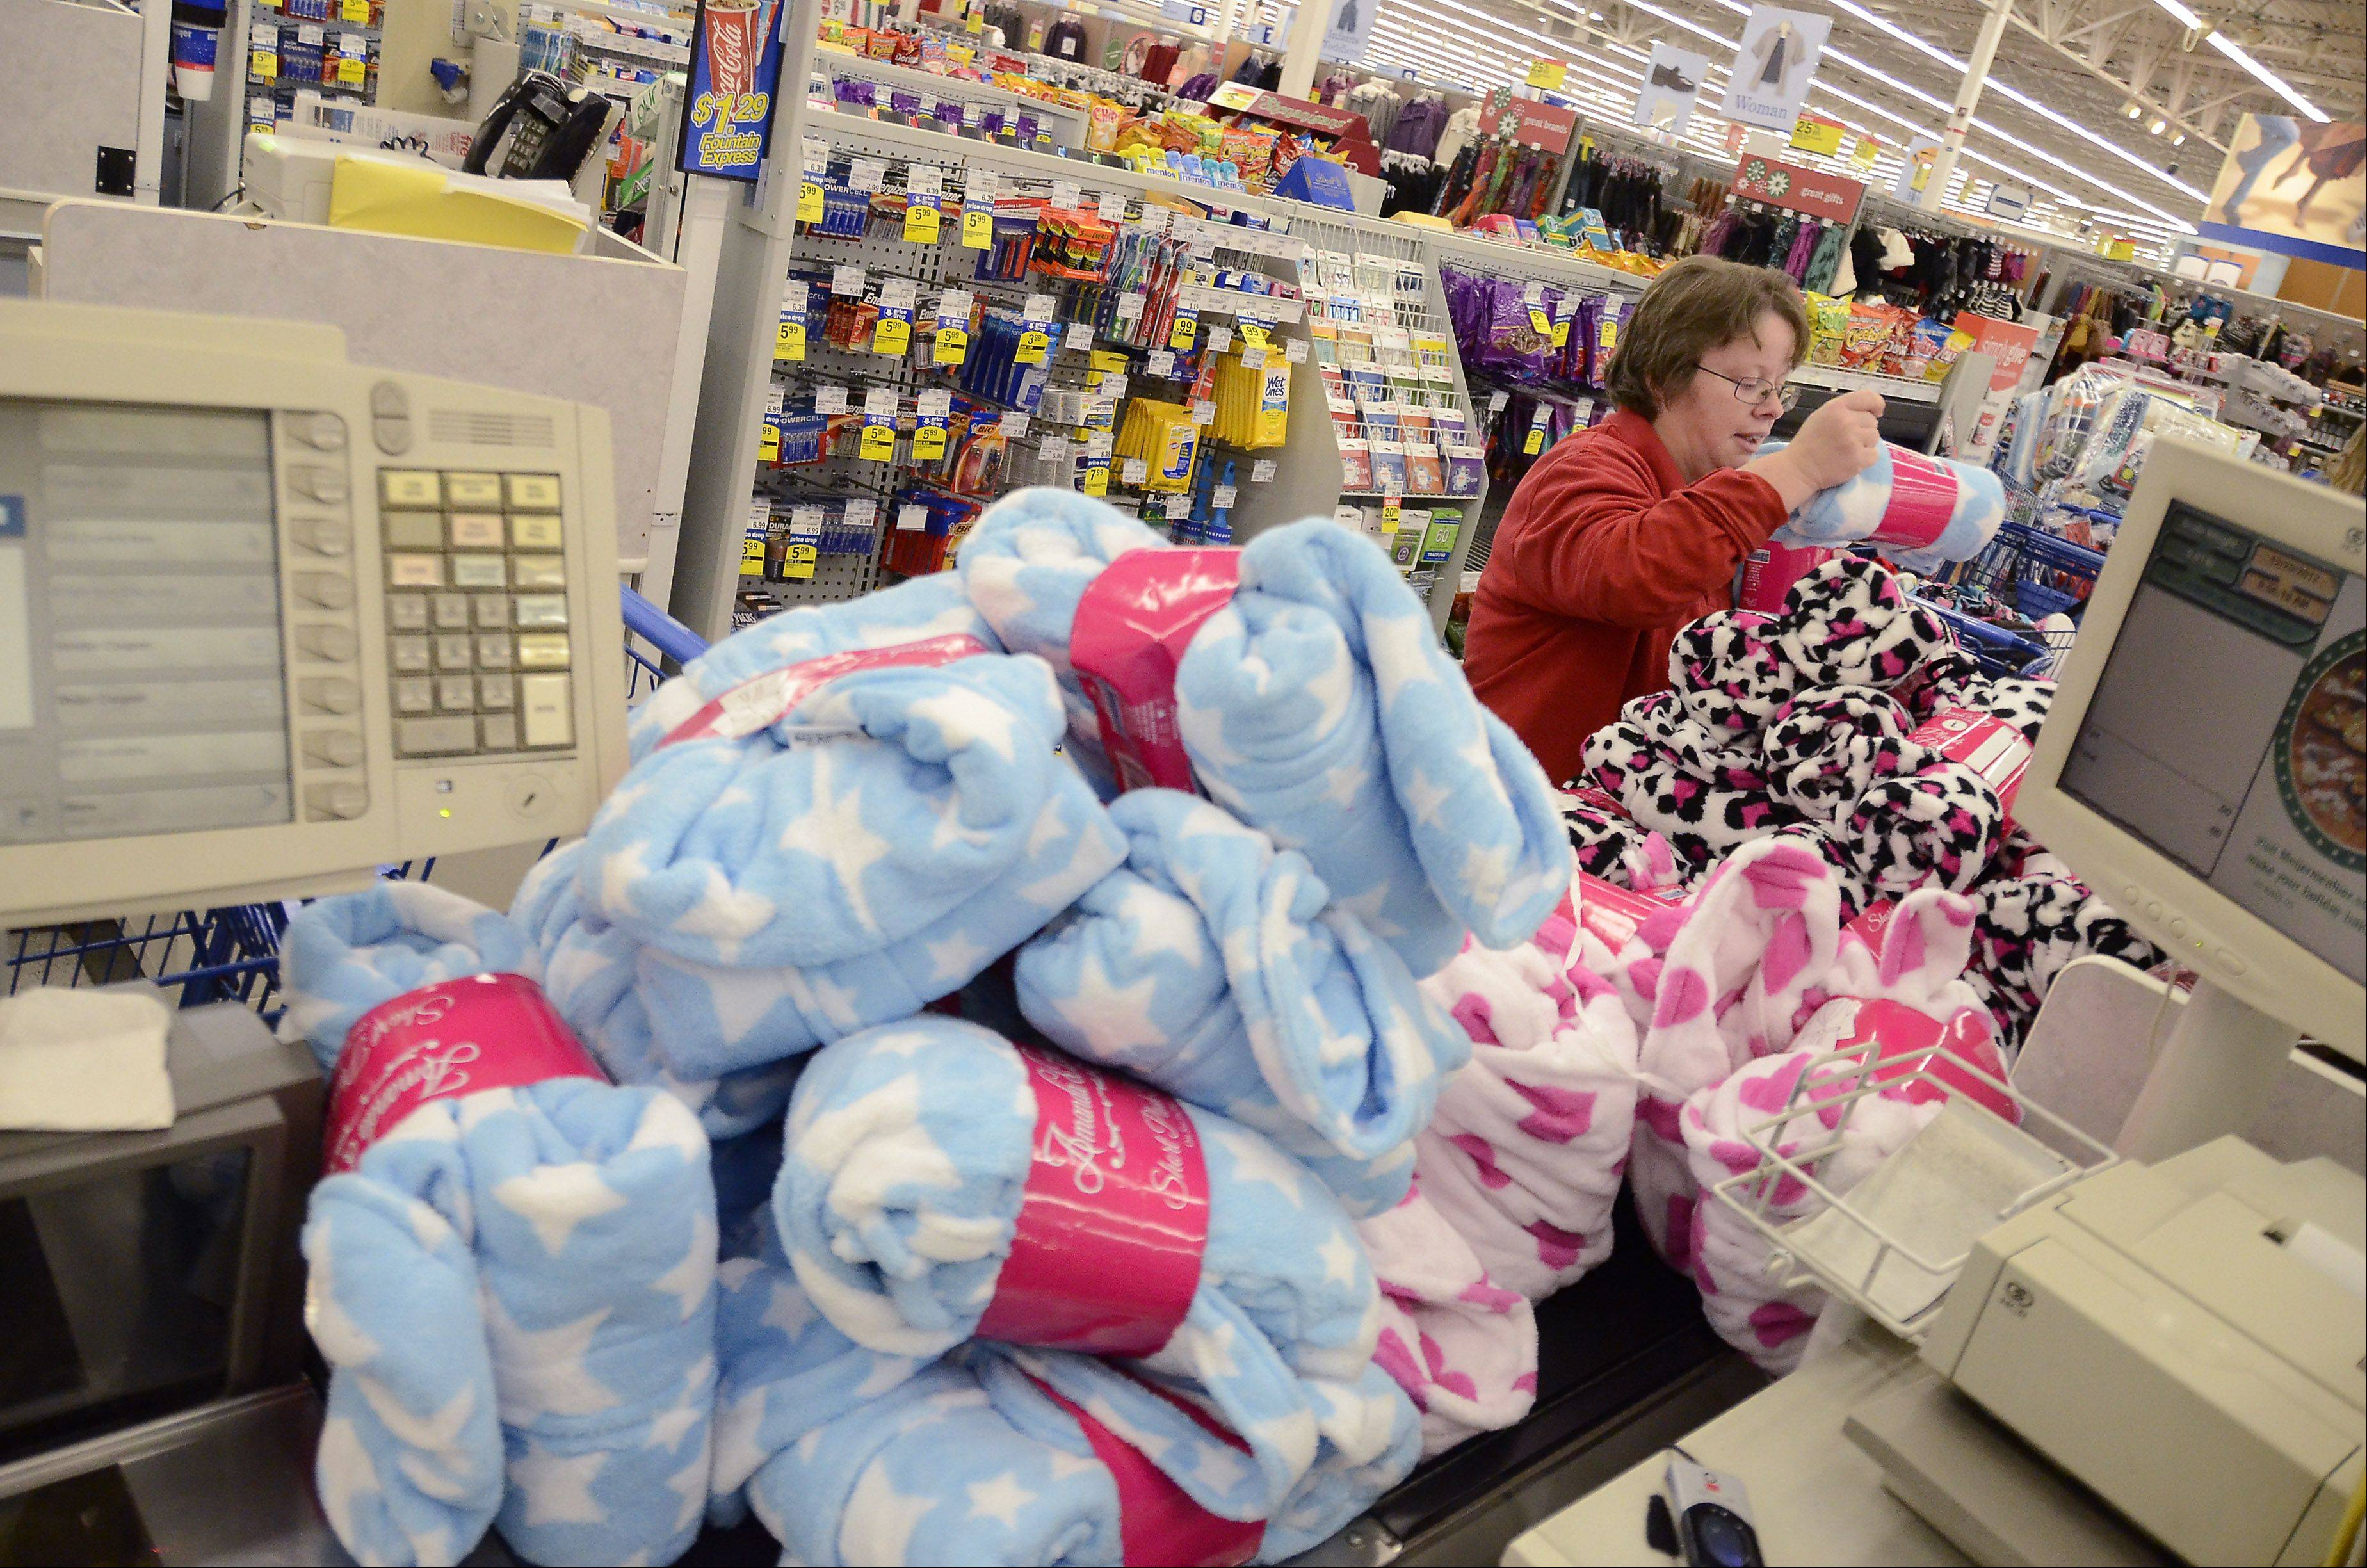 Toys from Daily Herald Hope for the Holidays campaign load up the checkout at the Meijer store in Rolling Meadows.